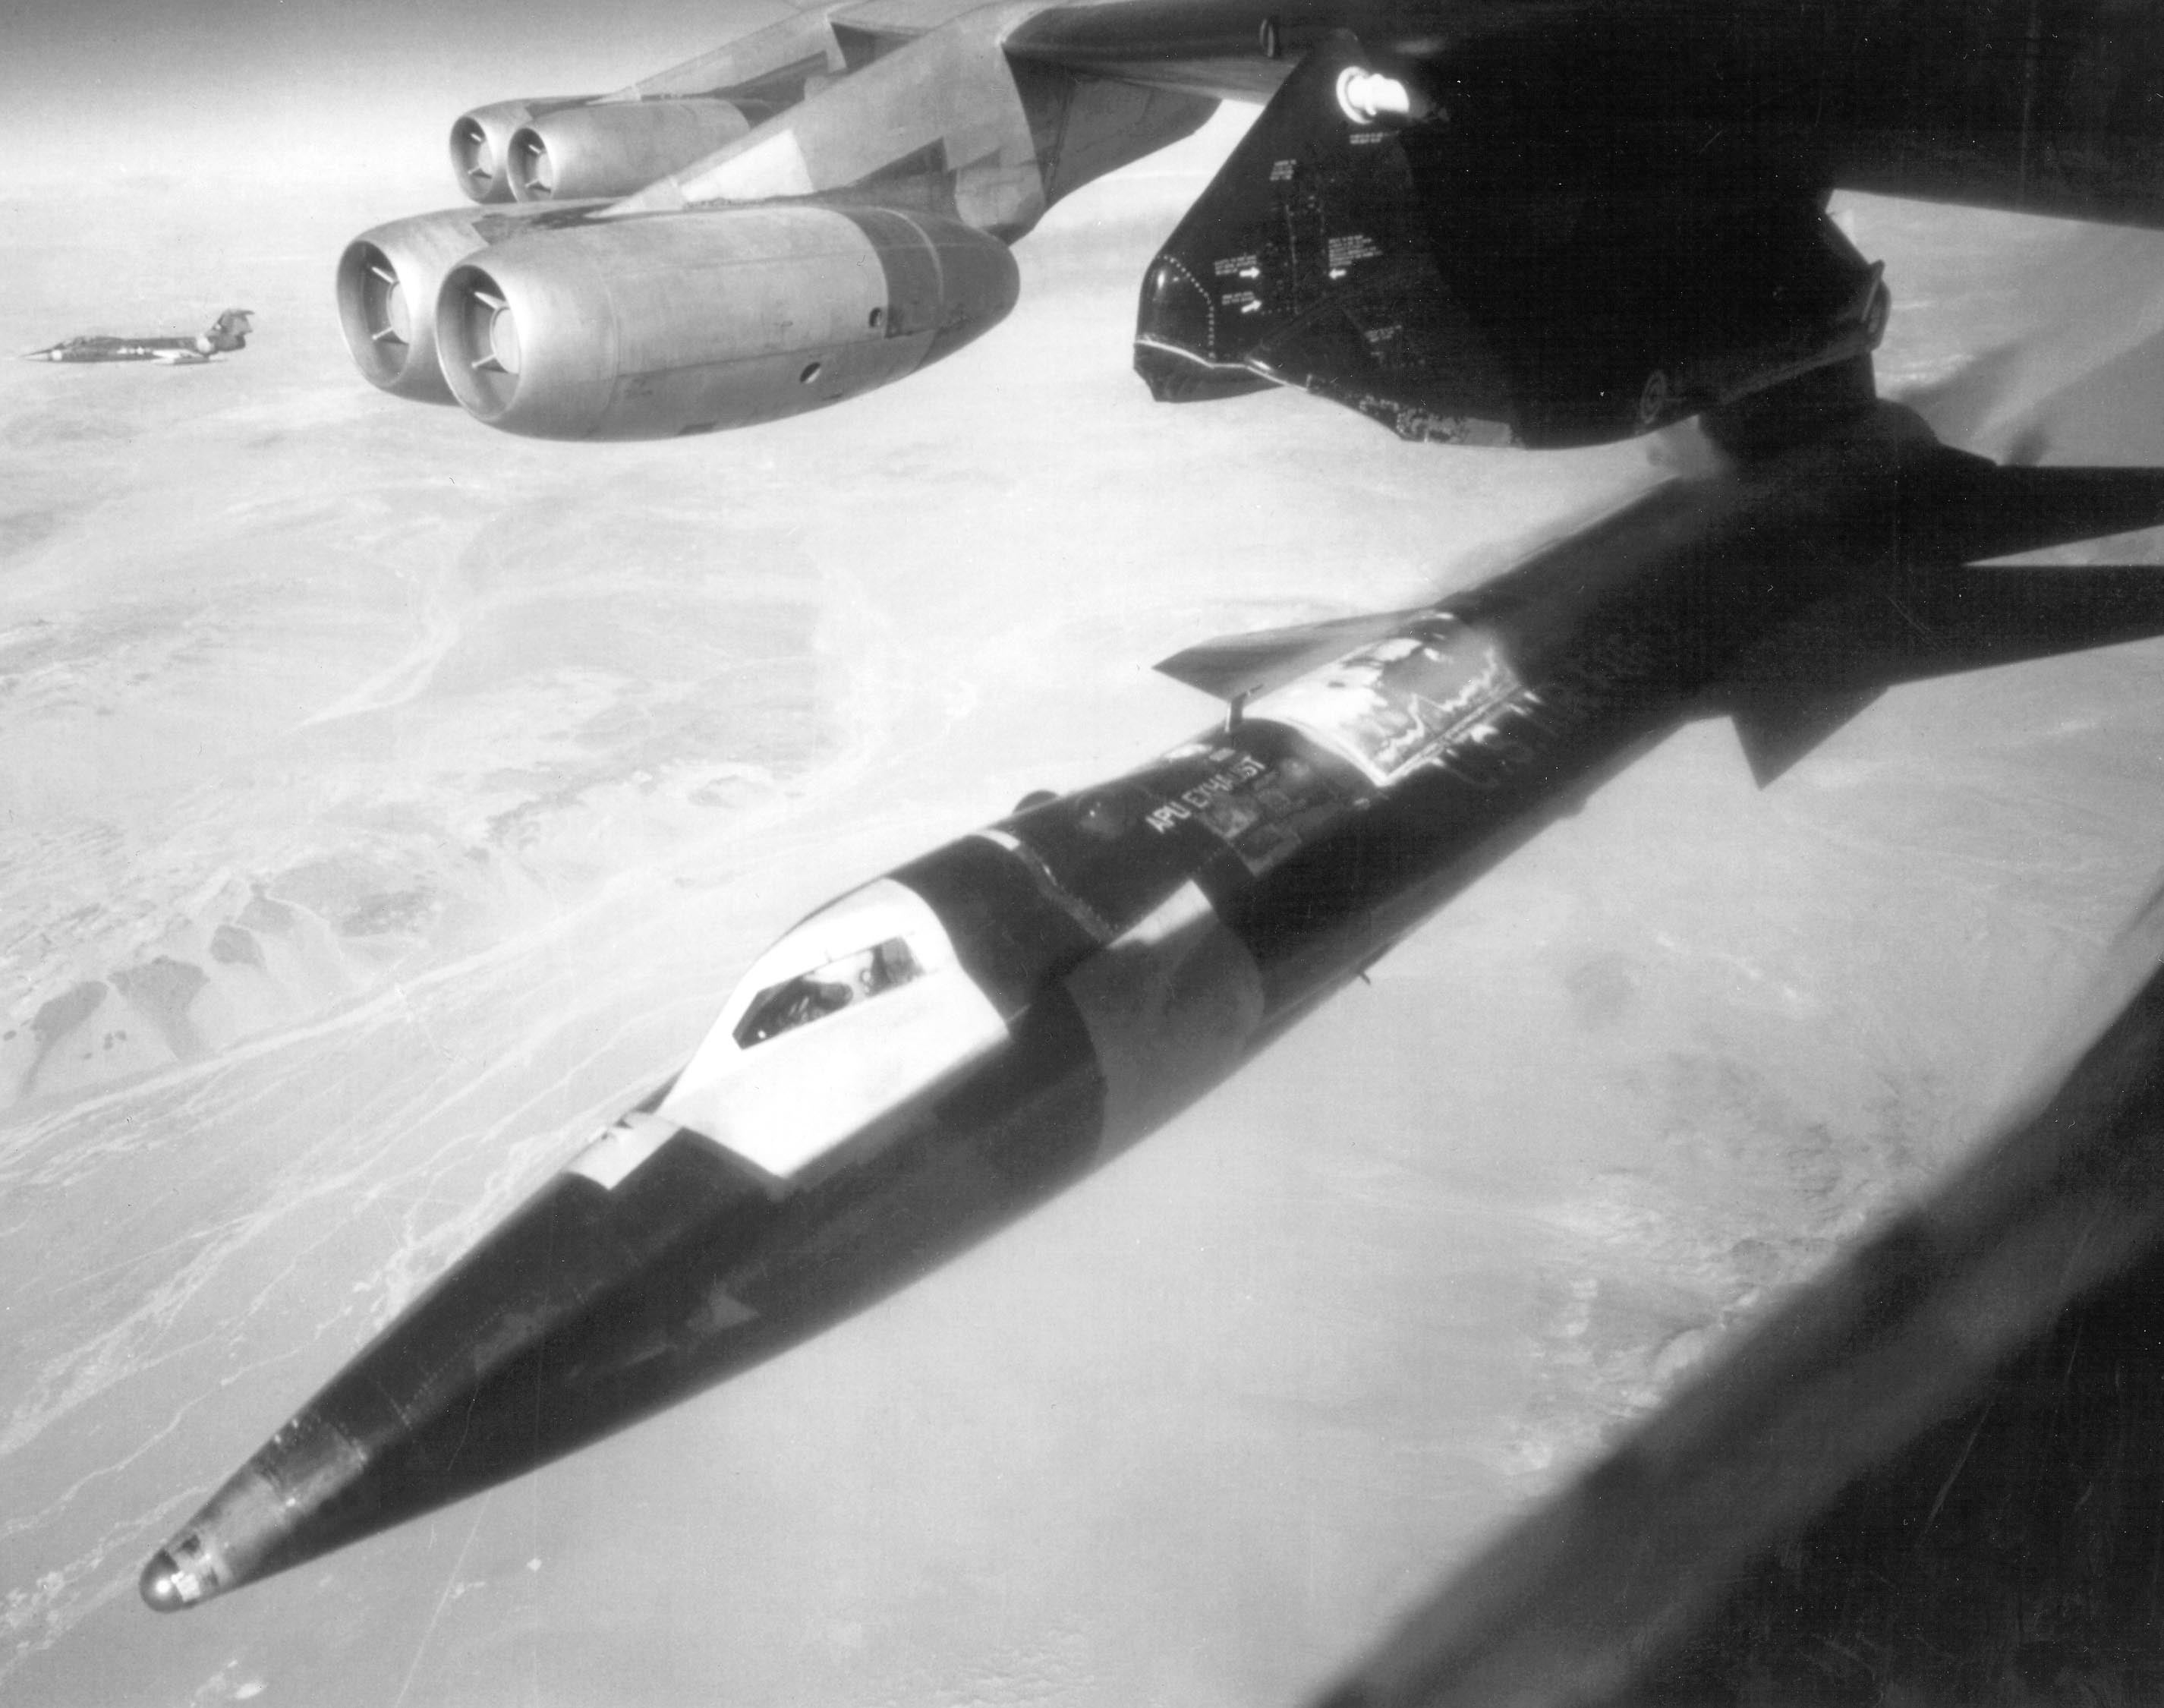 Outstanding photos of the X-15, the fastest manned aircraft ever made